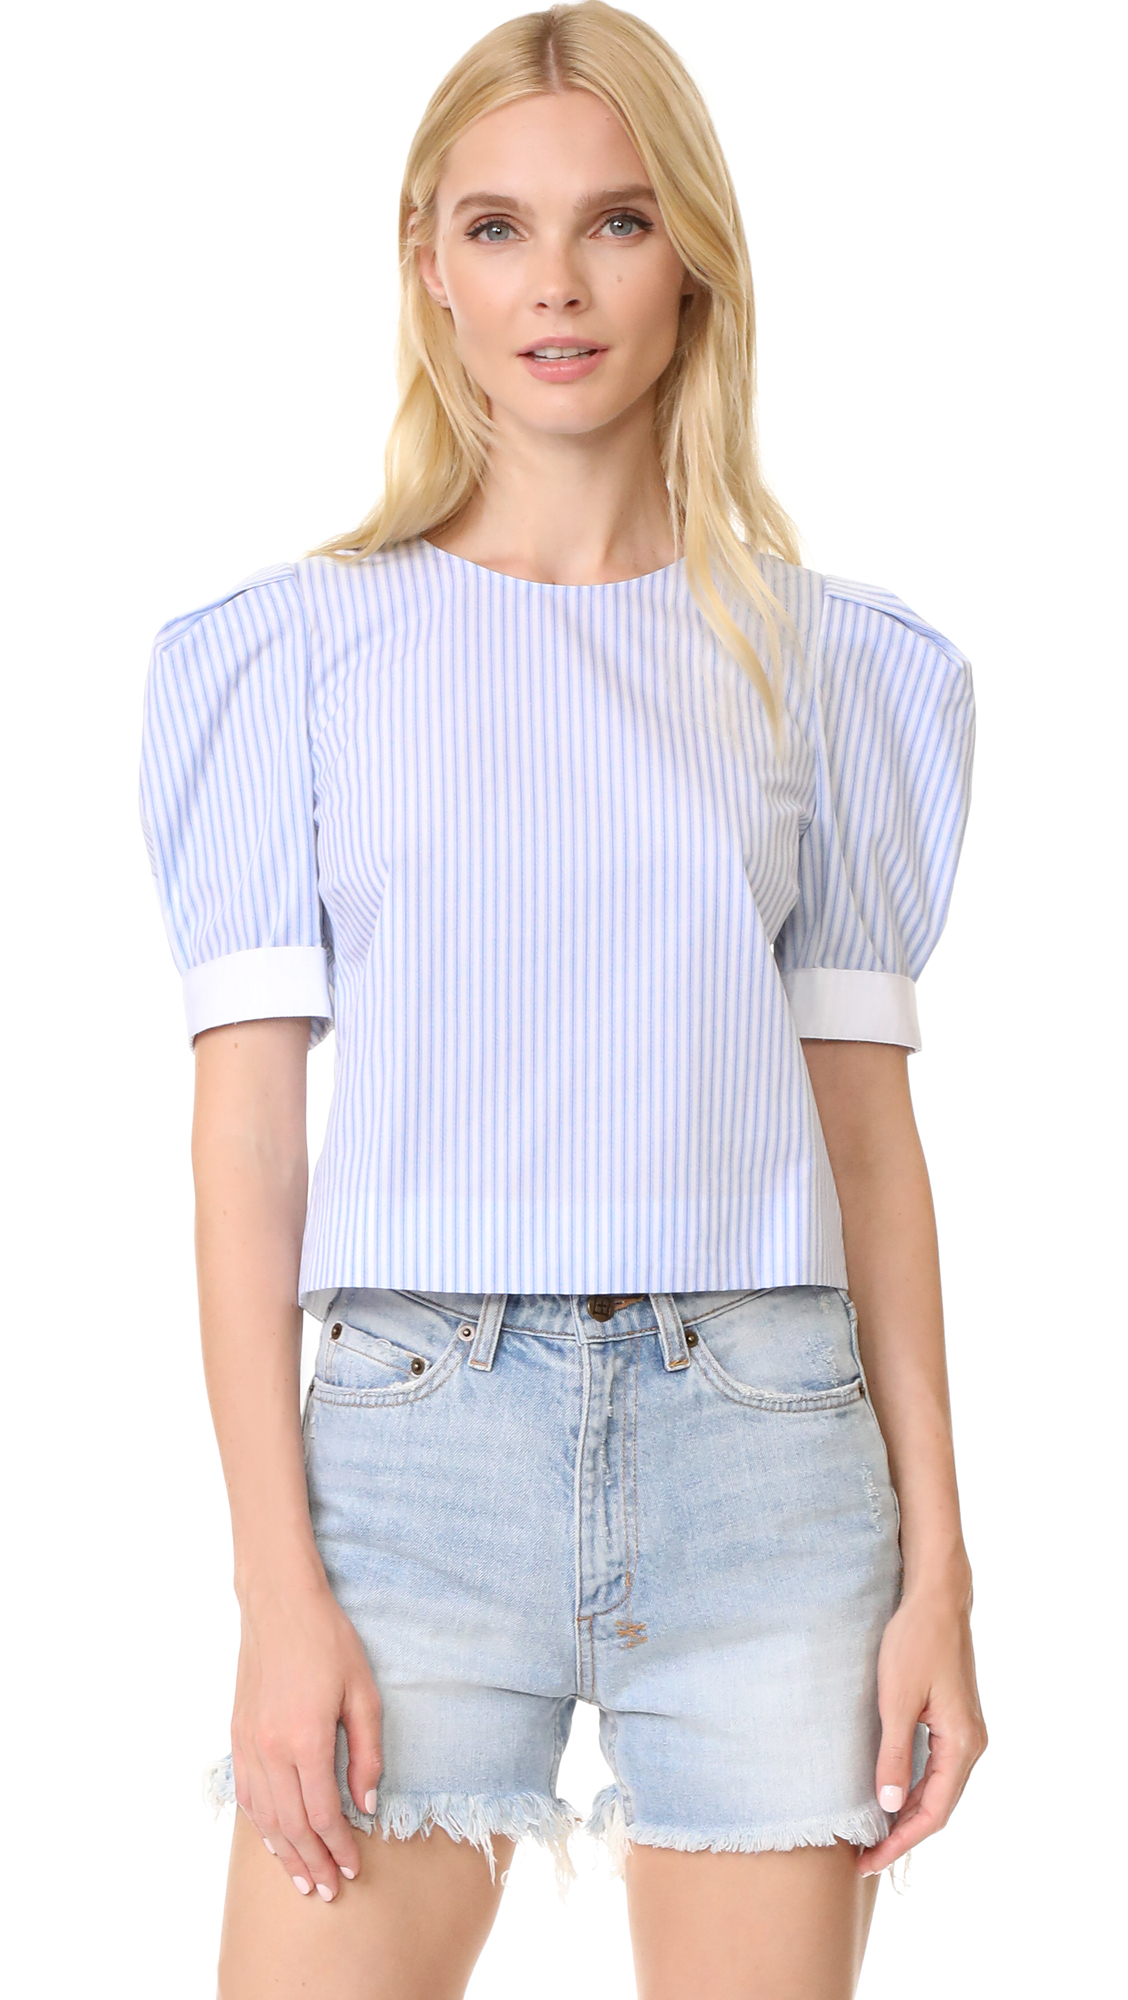 Adam Lippes Puff Sleeve Top - Blue Stripe